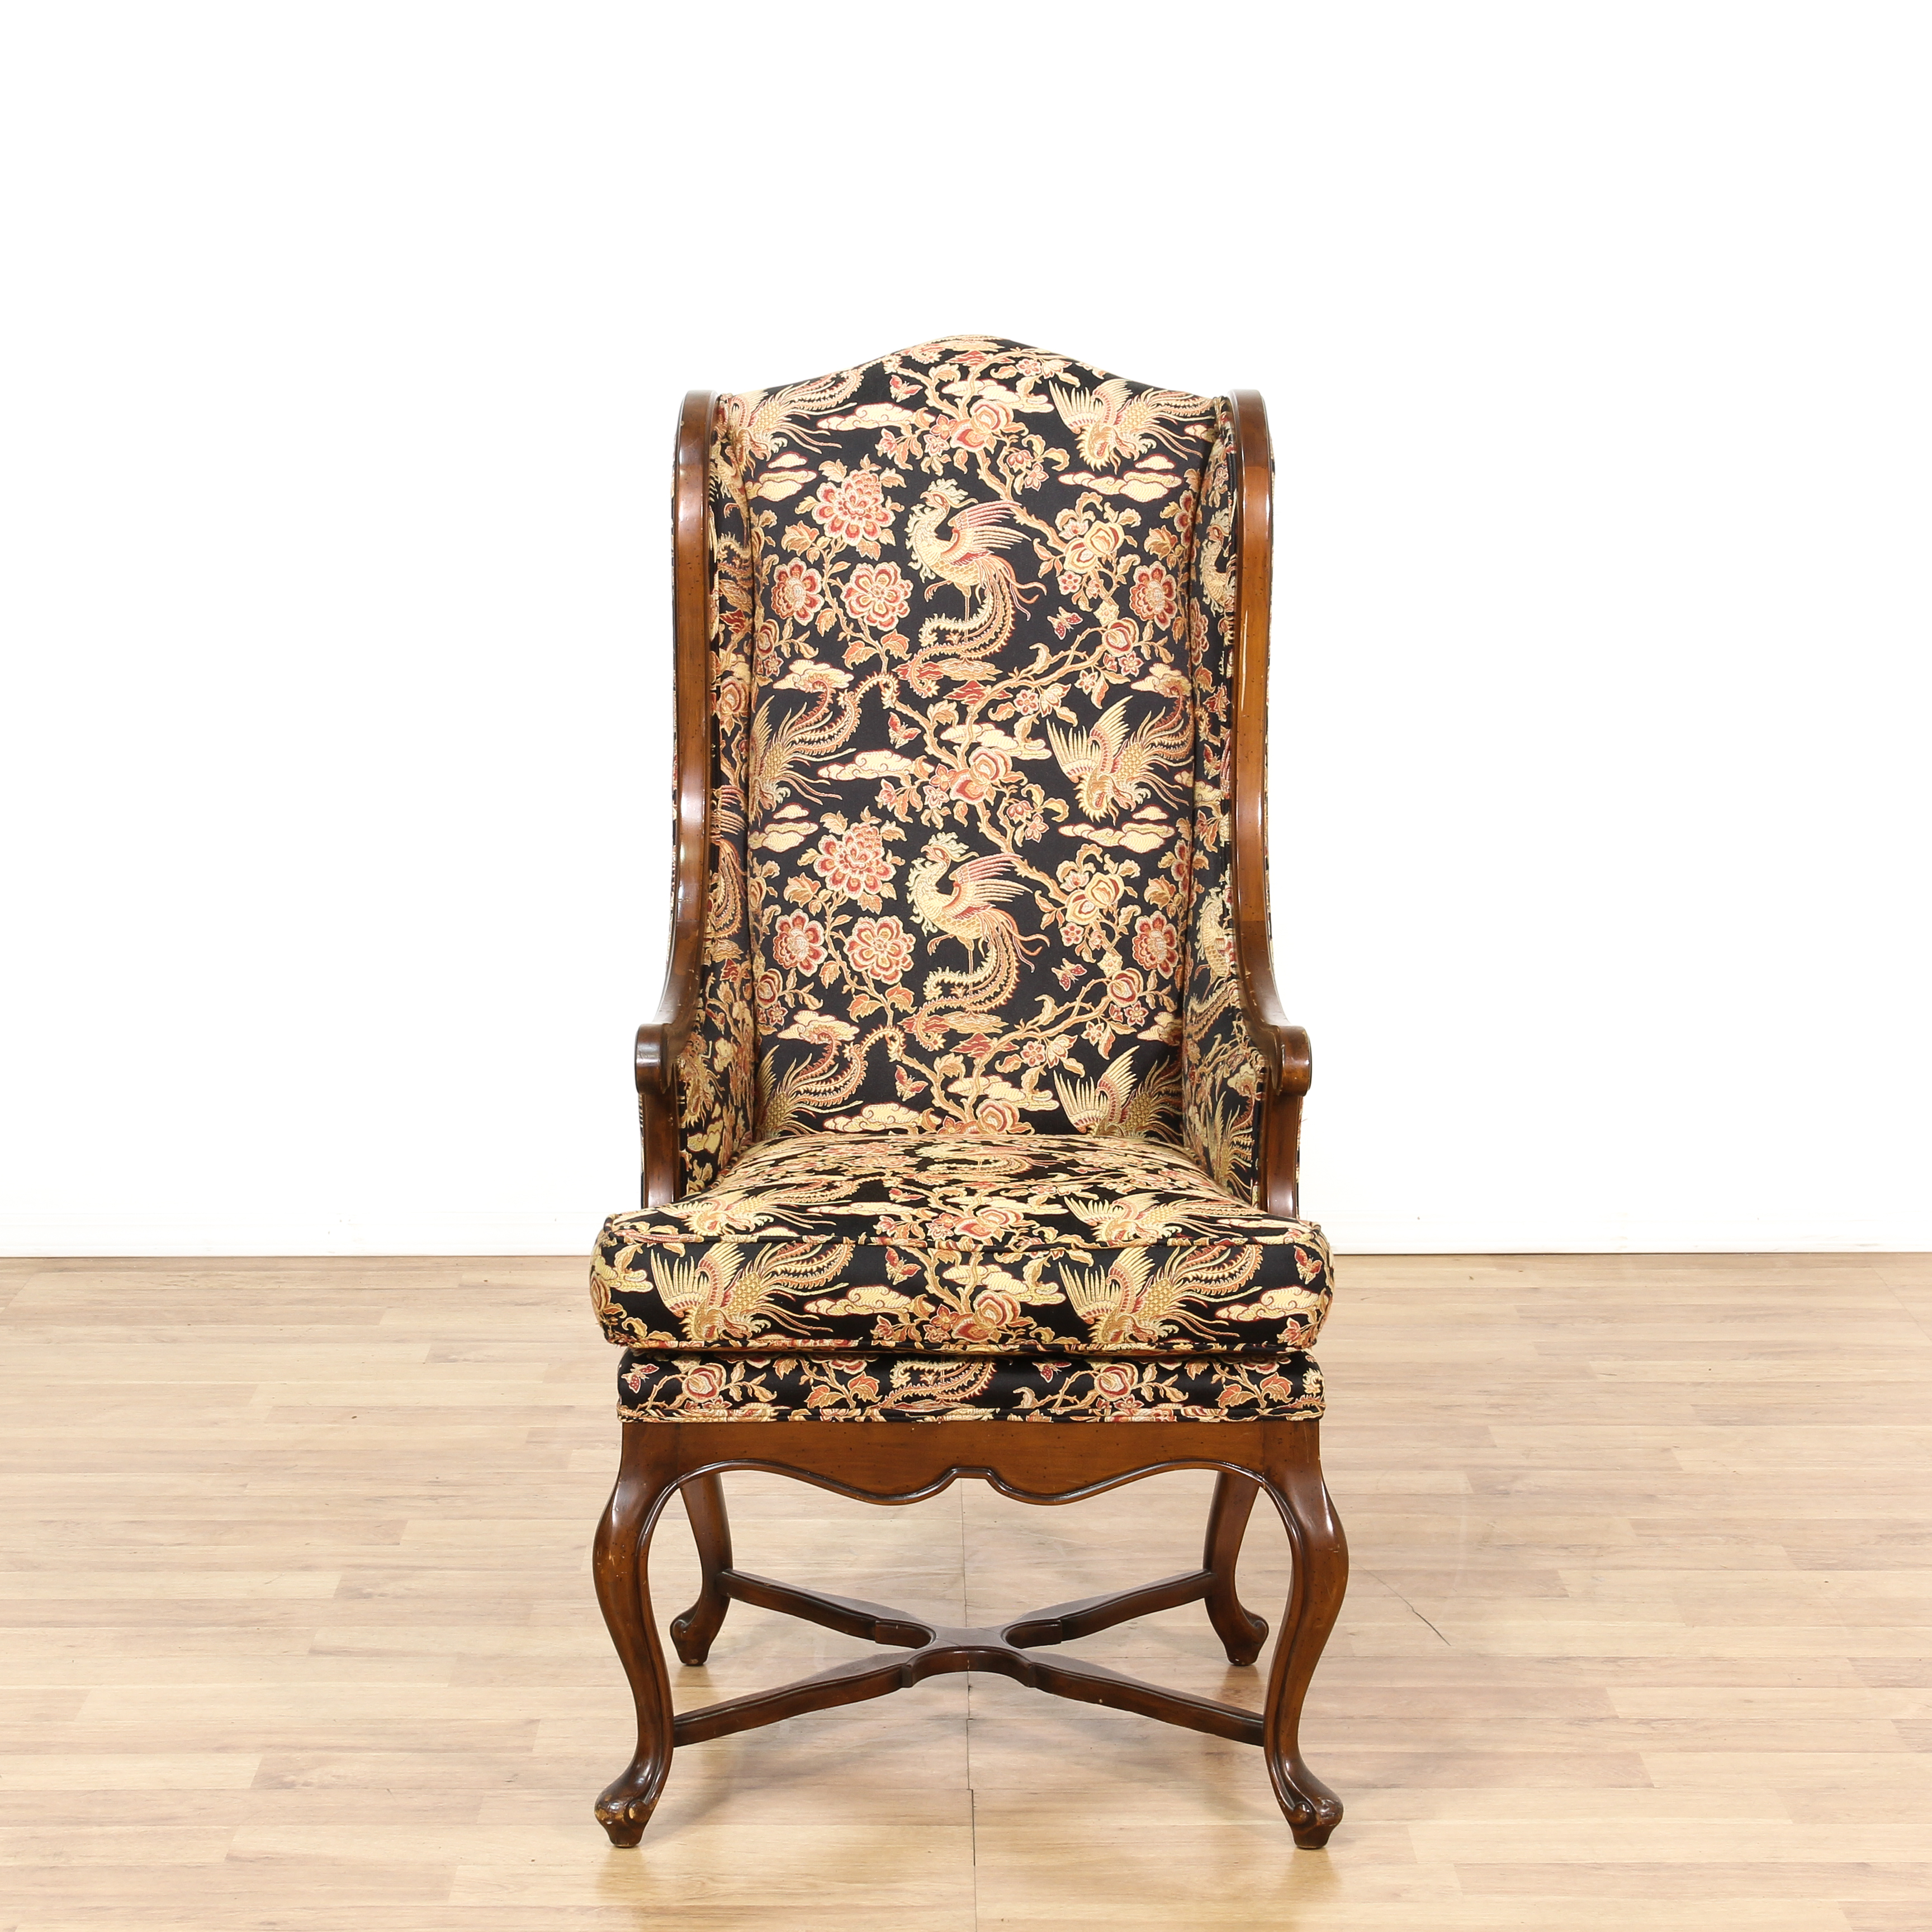 accent wingback chairs lionel outdoor wicker lounge chair and ottoman set with pillow tall walnut floral loveseat